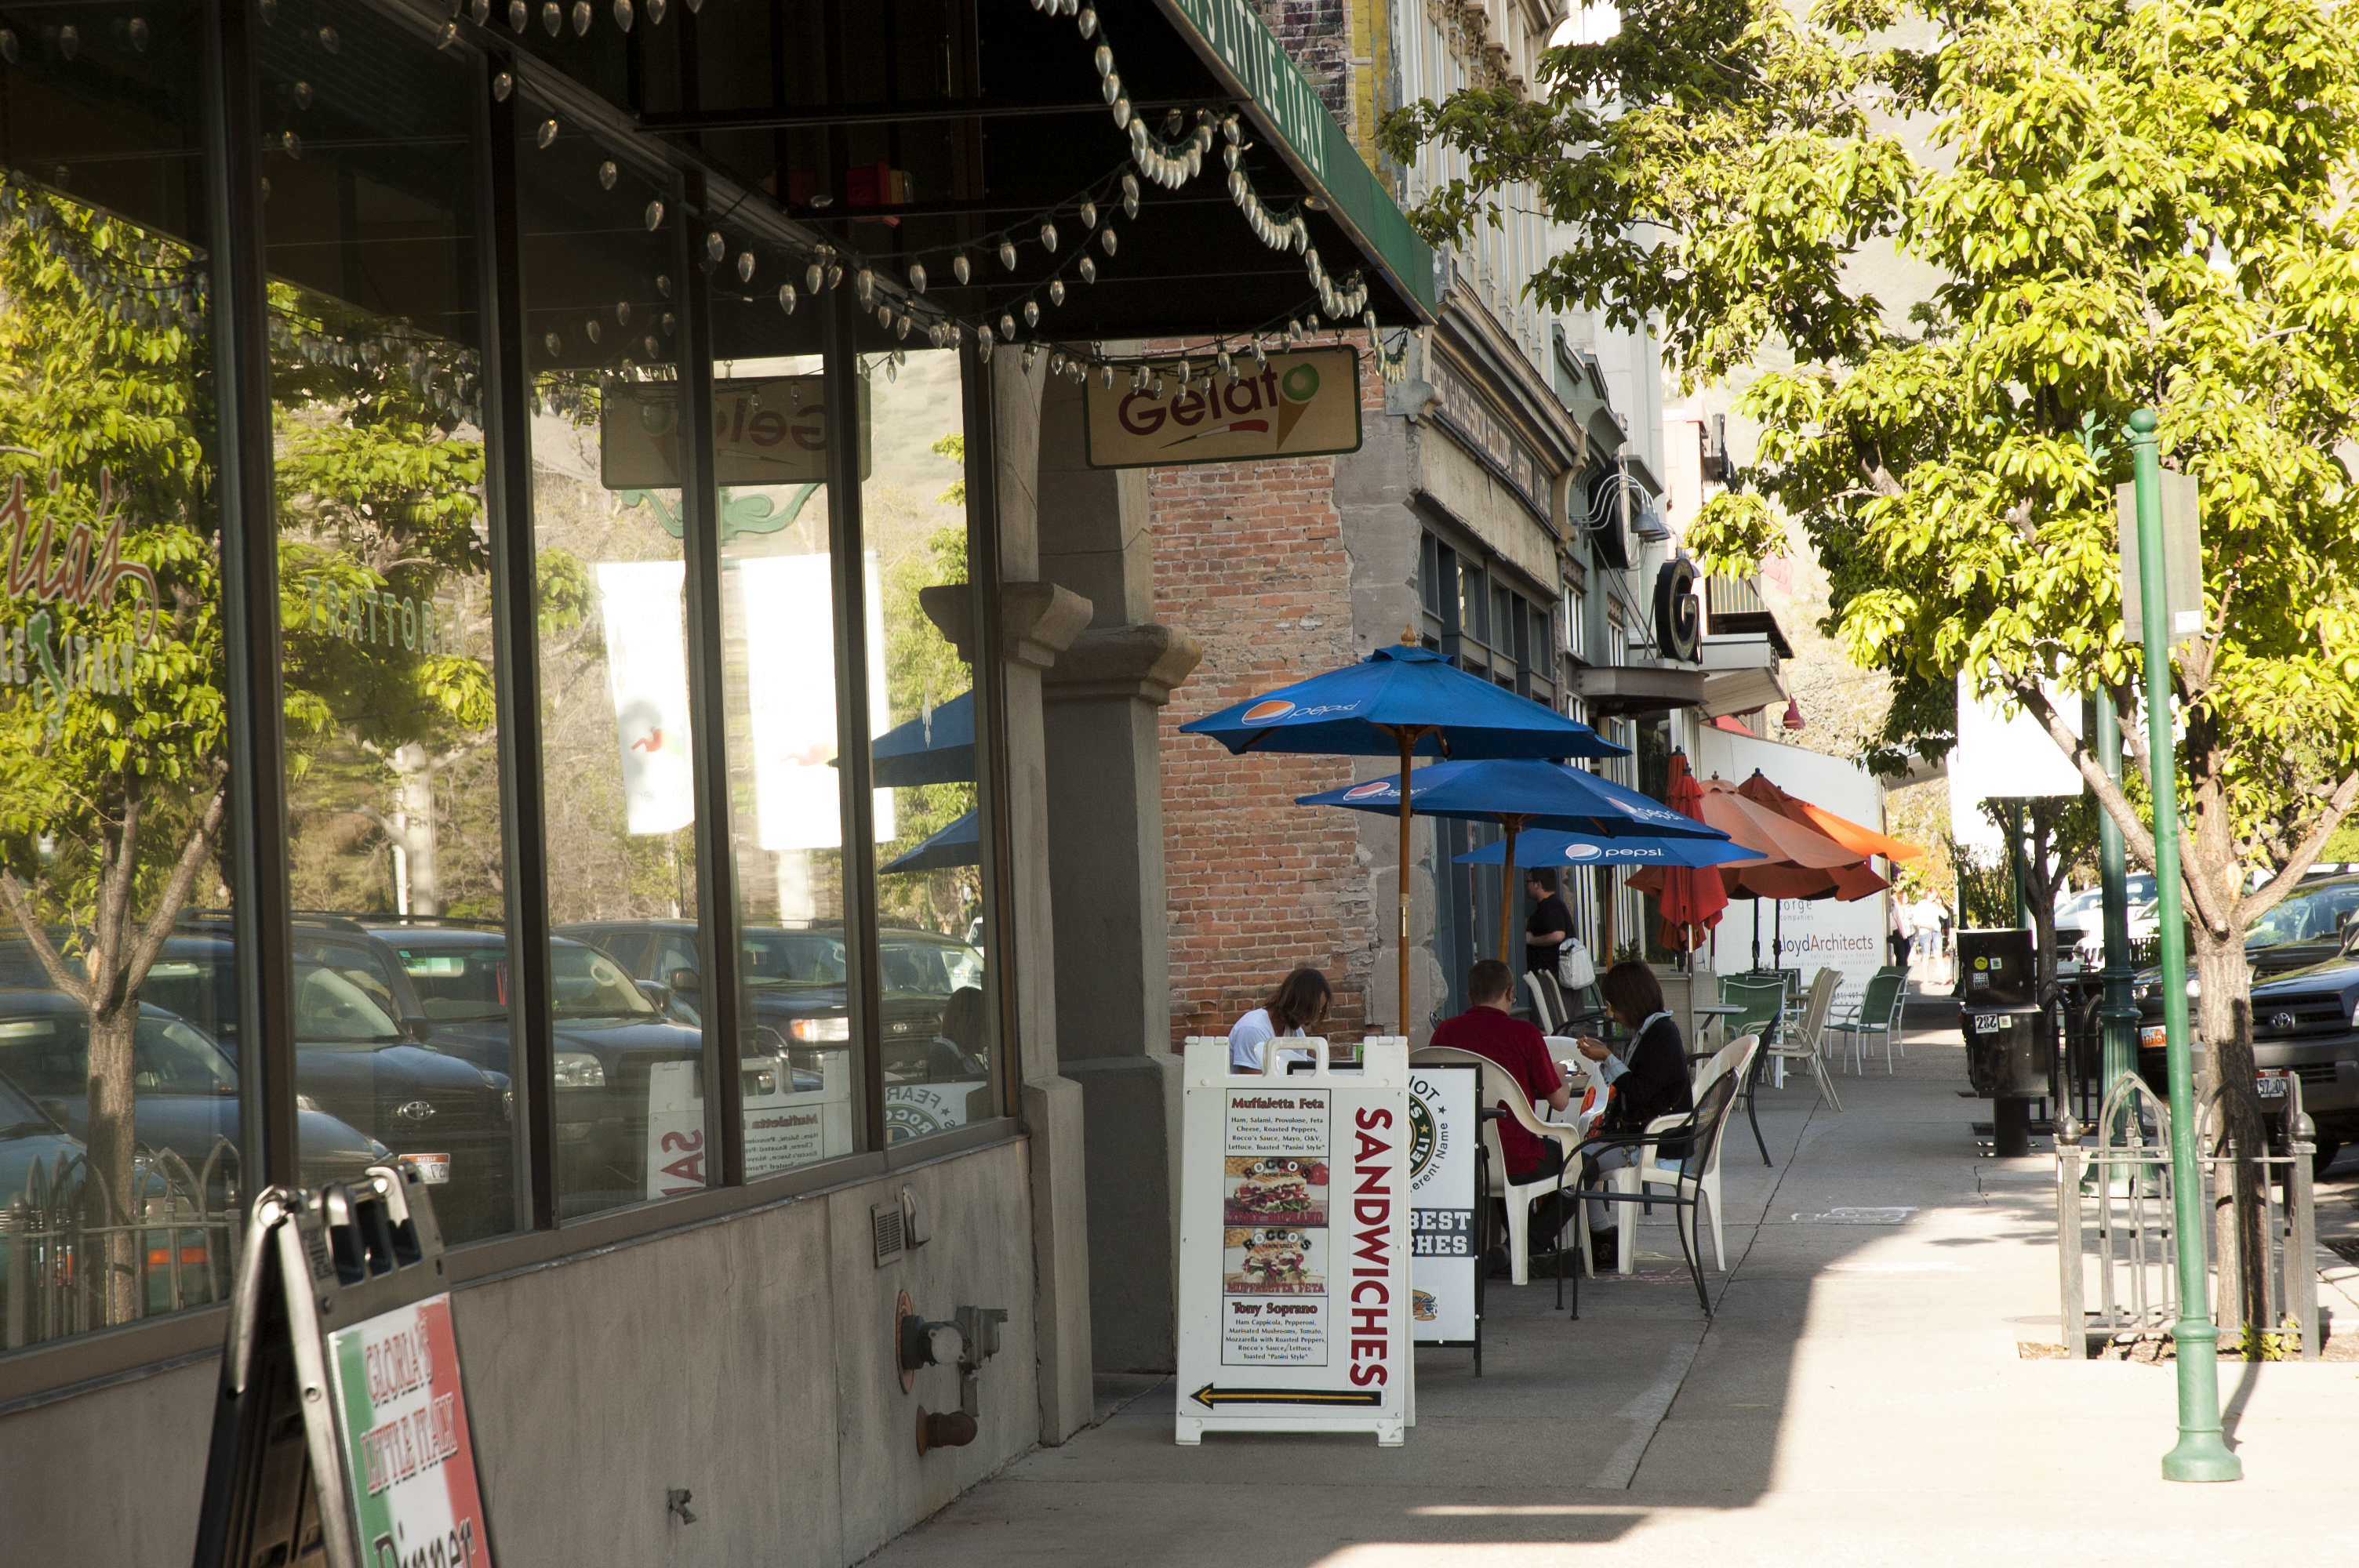 historic tour app gives locals a glimpse into provo u0027s long